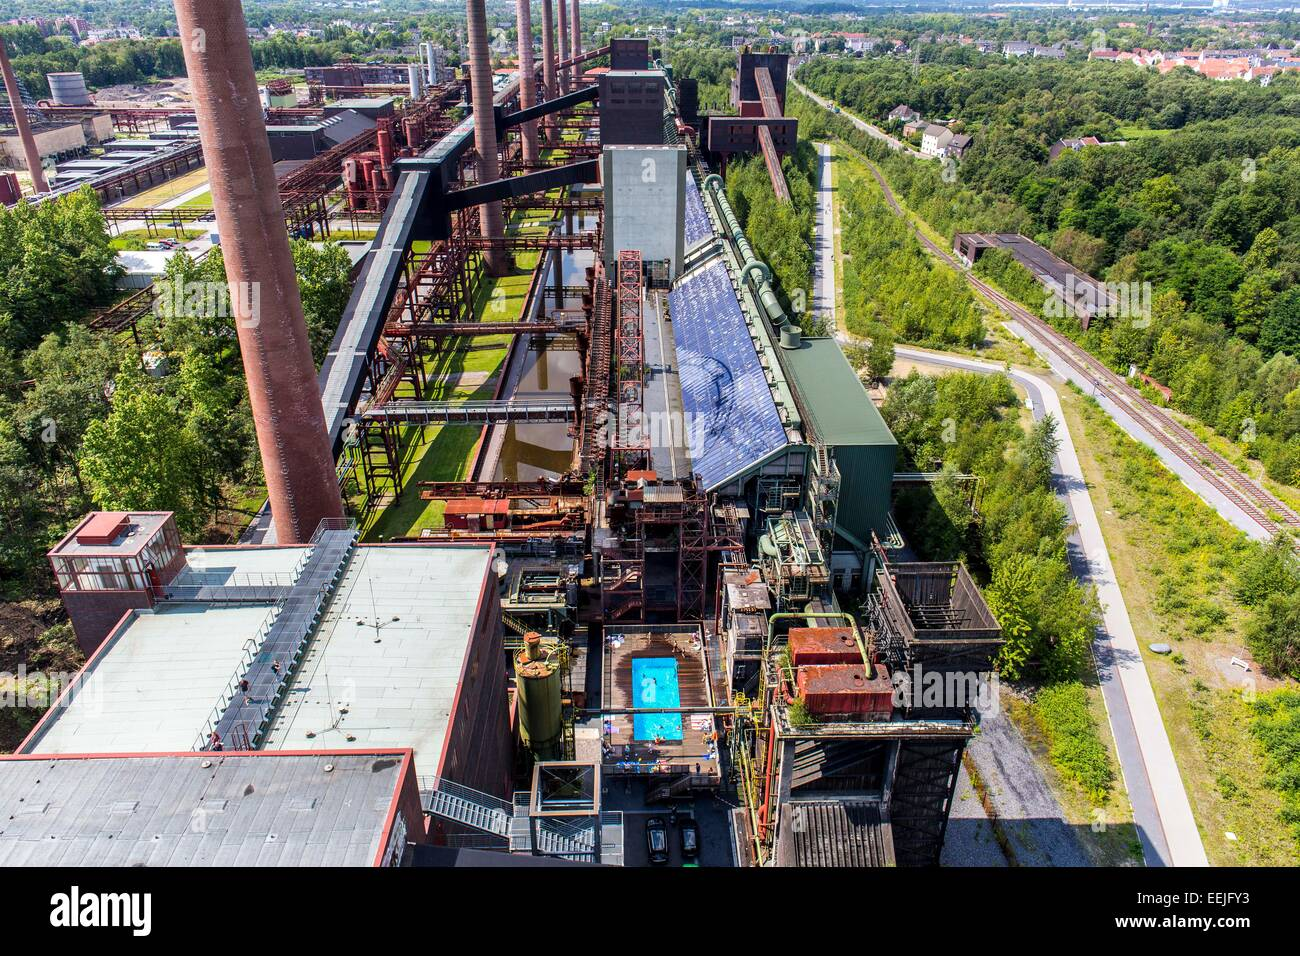 Zollverein coking plant, UNESCO world heritage site, Essen, Germany - Stock Image